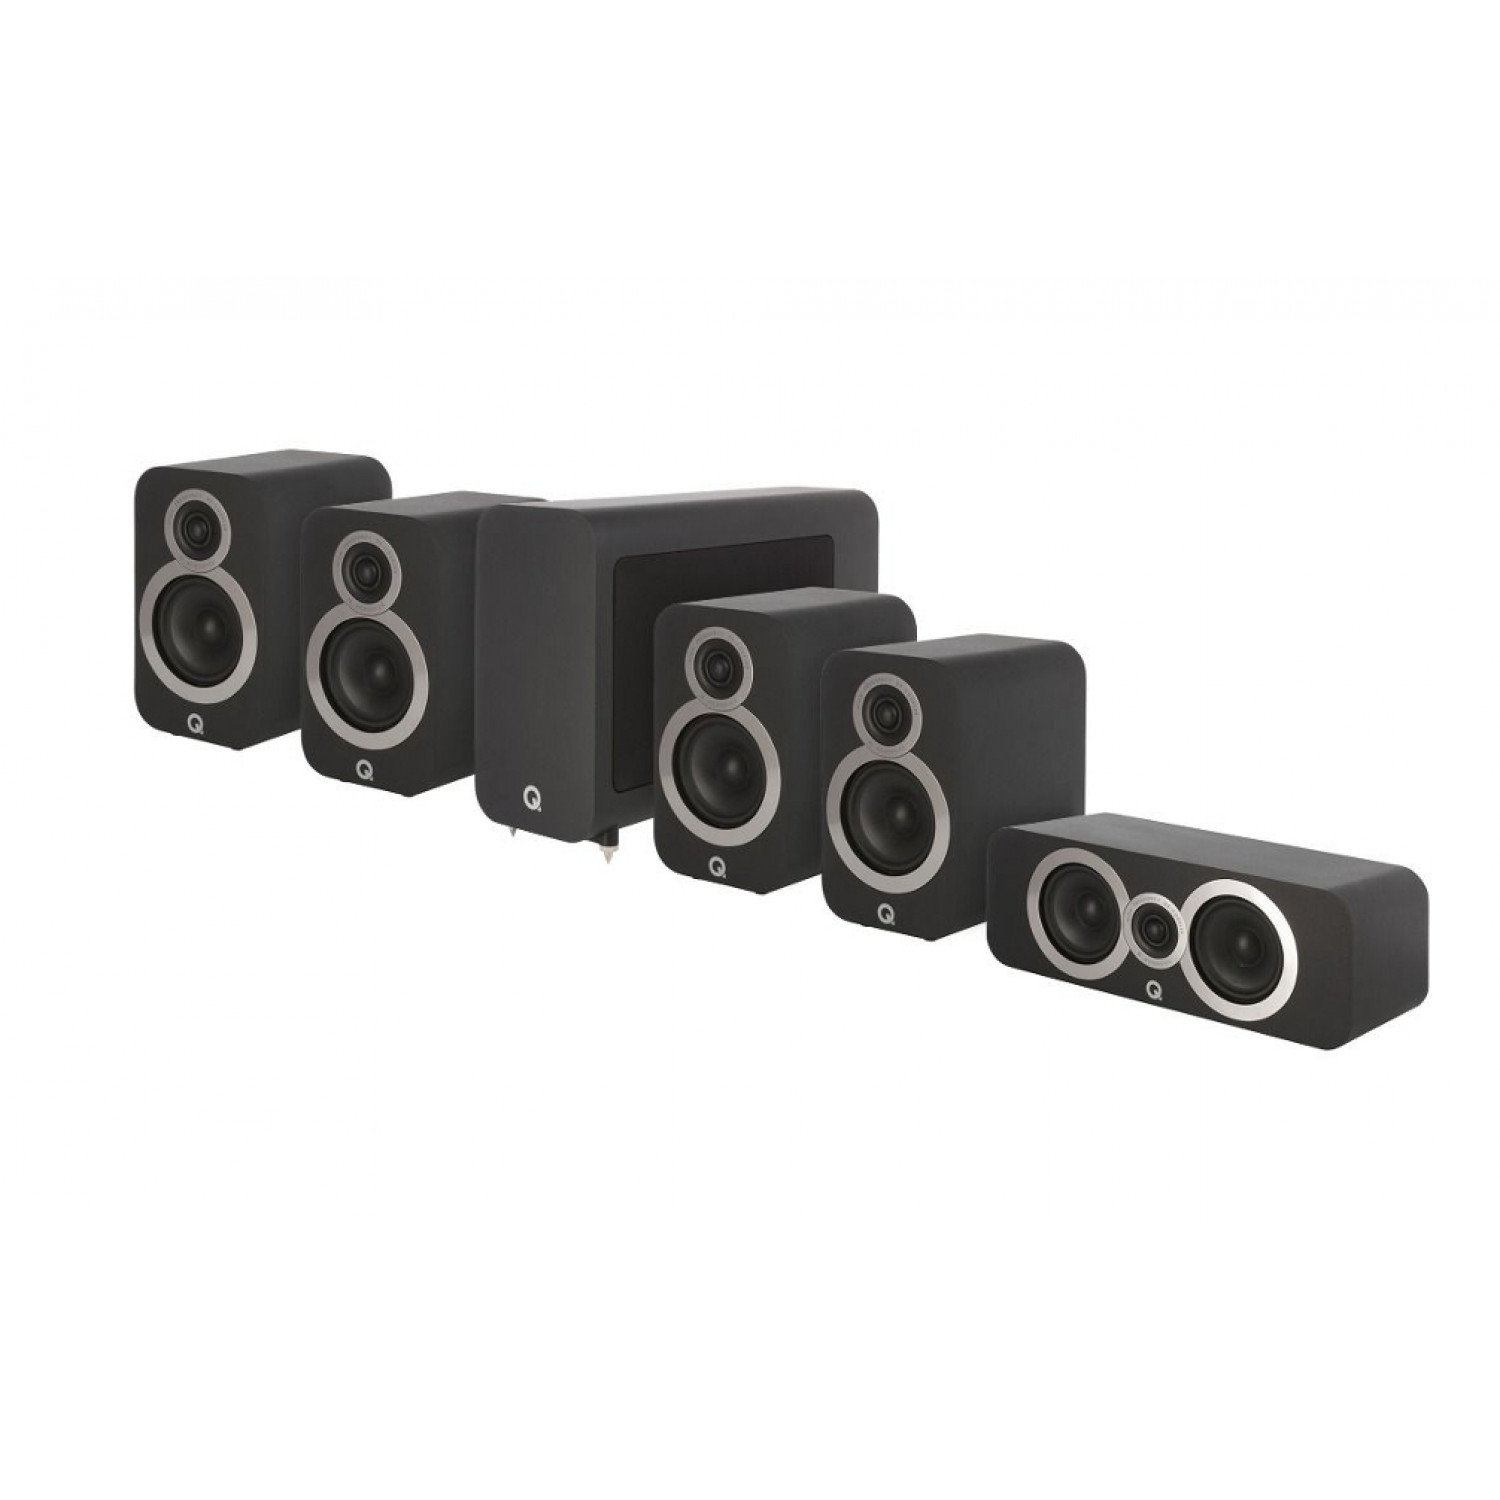 q-acoustics-q-3010i-cinema-pack-sistema-home-cinema-composto-di-2-cp-q3010i-q3090i-centre-q3060s-subwoofer-finiture-disponibili-grigio-noce-nero-bianco.jpg